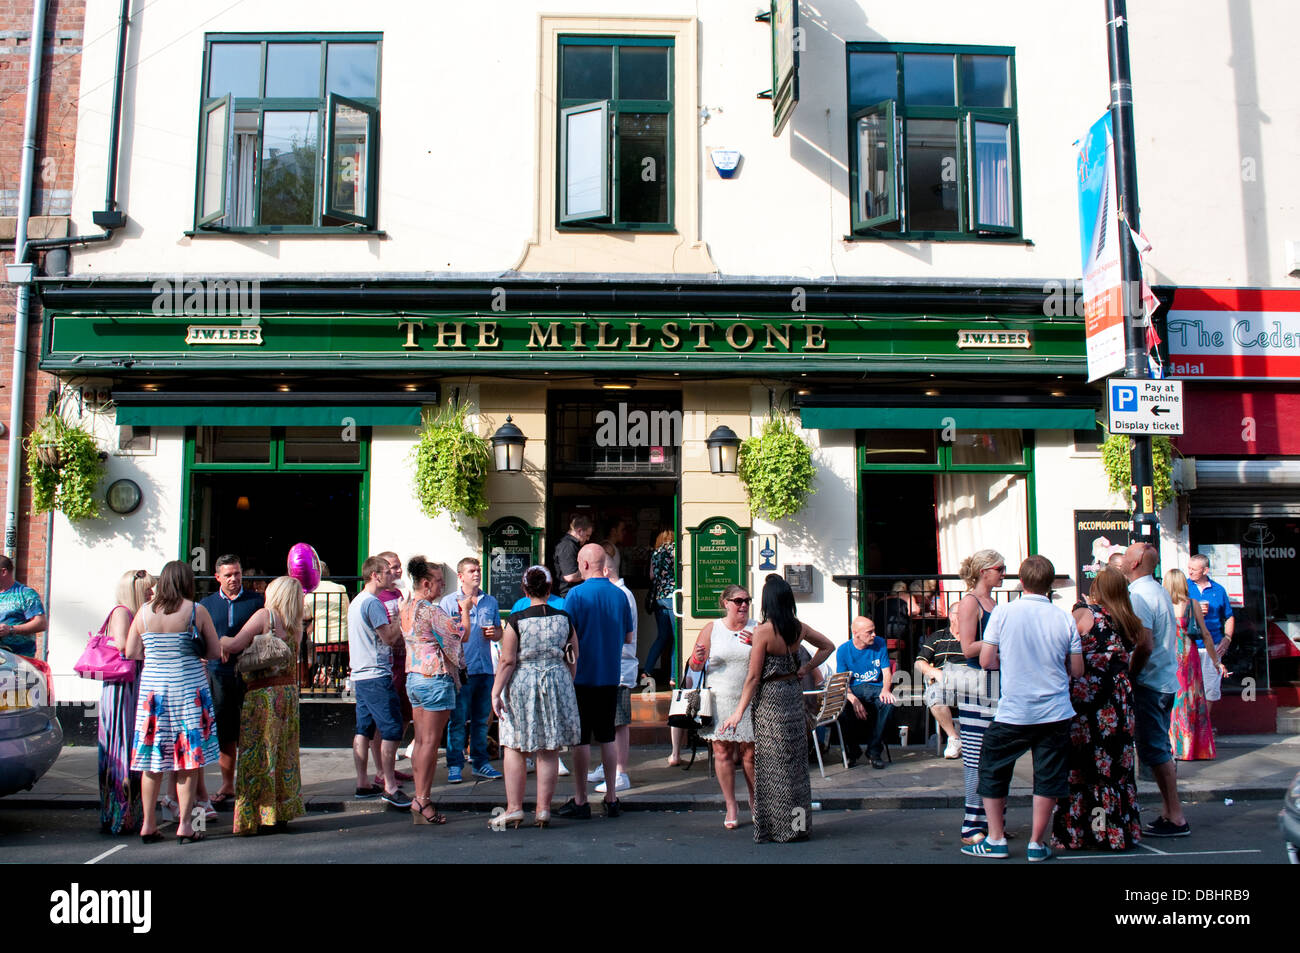 People drinking at The Millstone Pub, Thomas Street, Central Manchester, UK - Stock Image